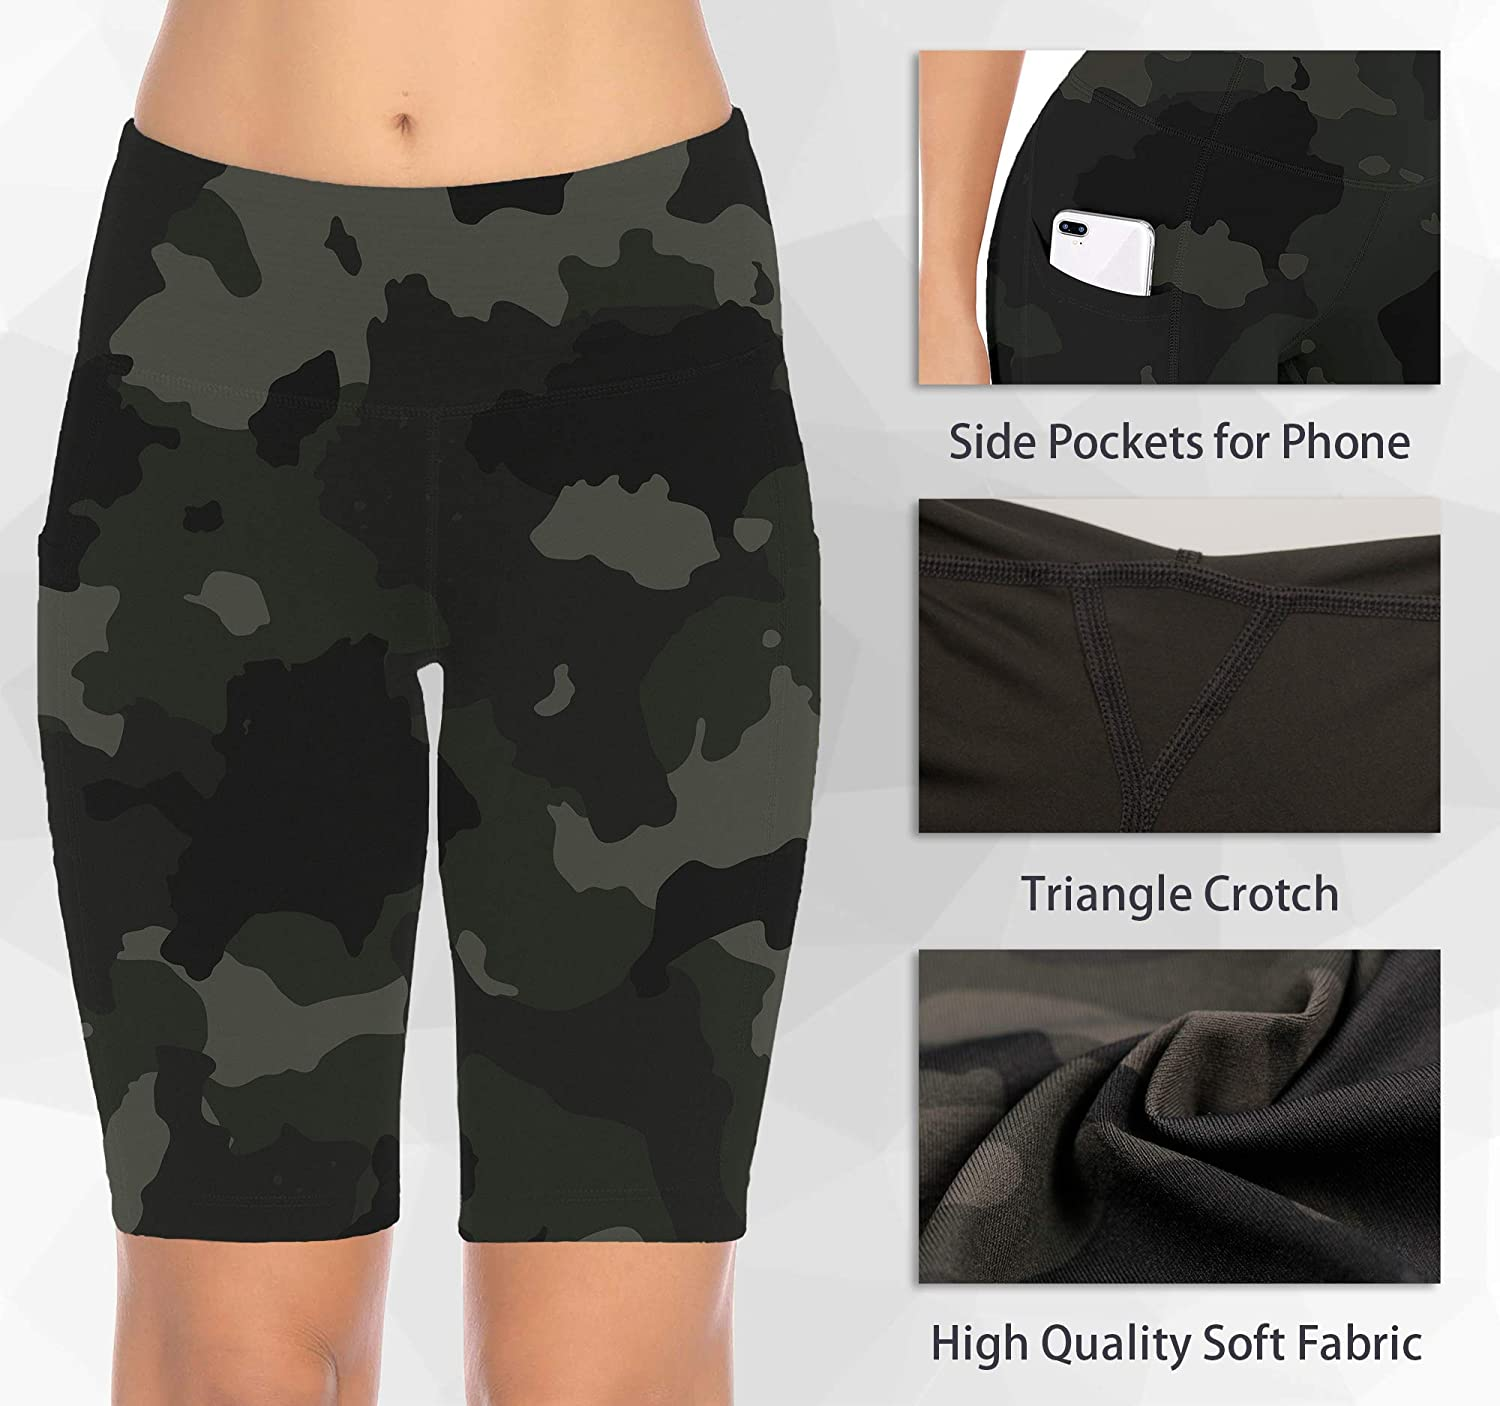 8 Inseam MAVOUR COUTURE High Waist Out Pockets Workout Shorts Super Stretch/Non See-Through Yoga Shorts for Bike